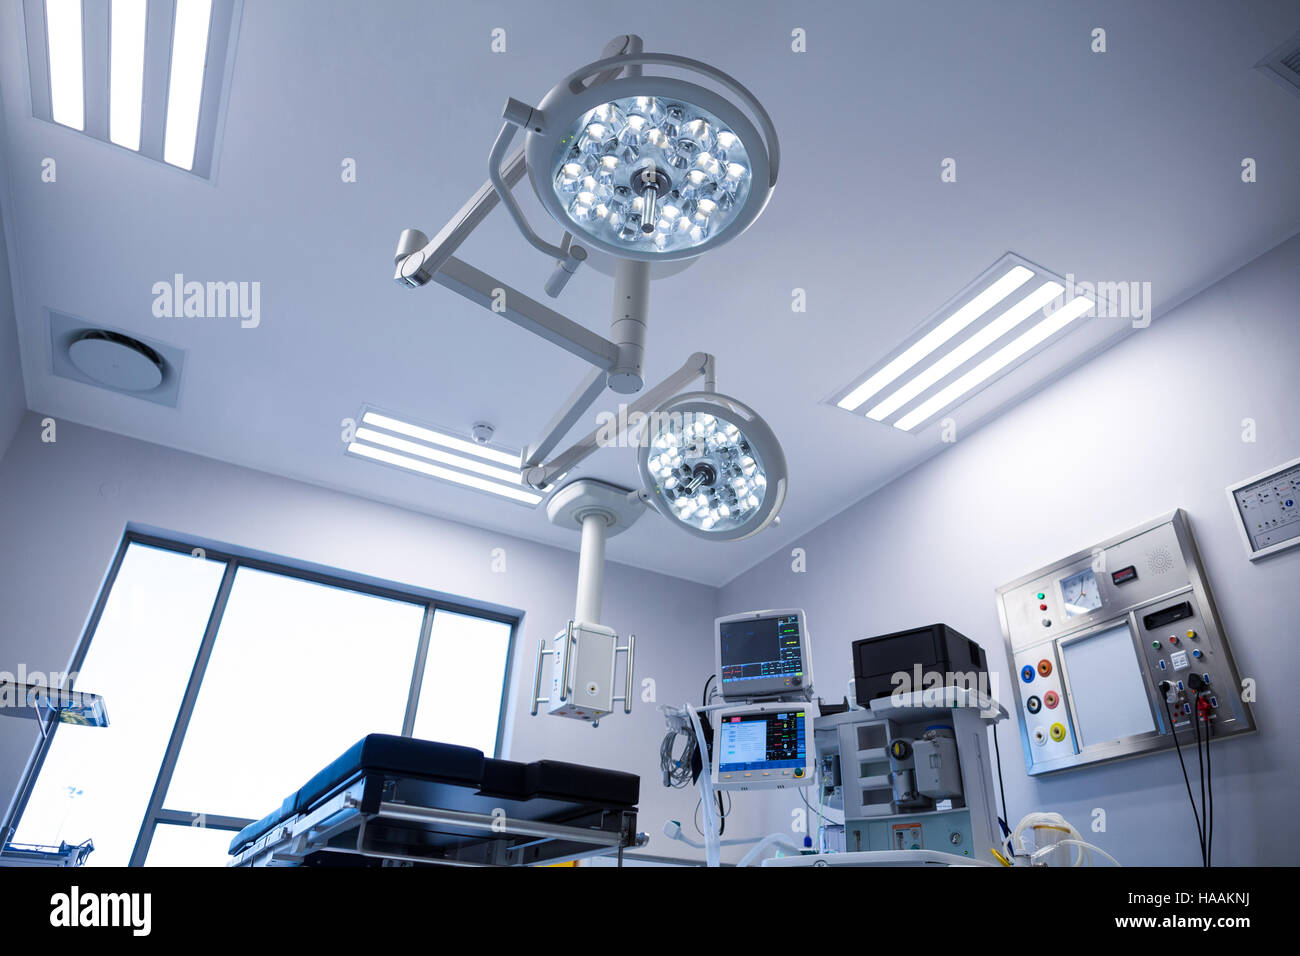 Interior view of operating room - Stock Image